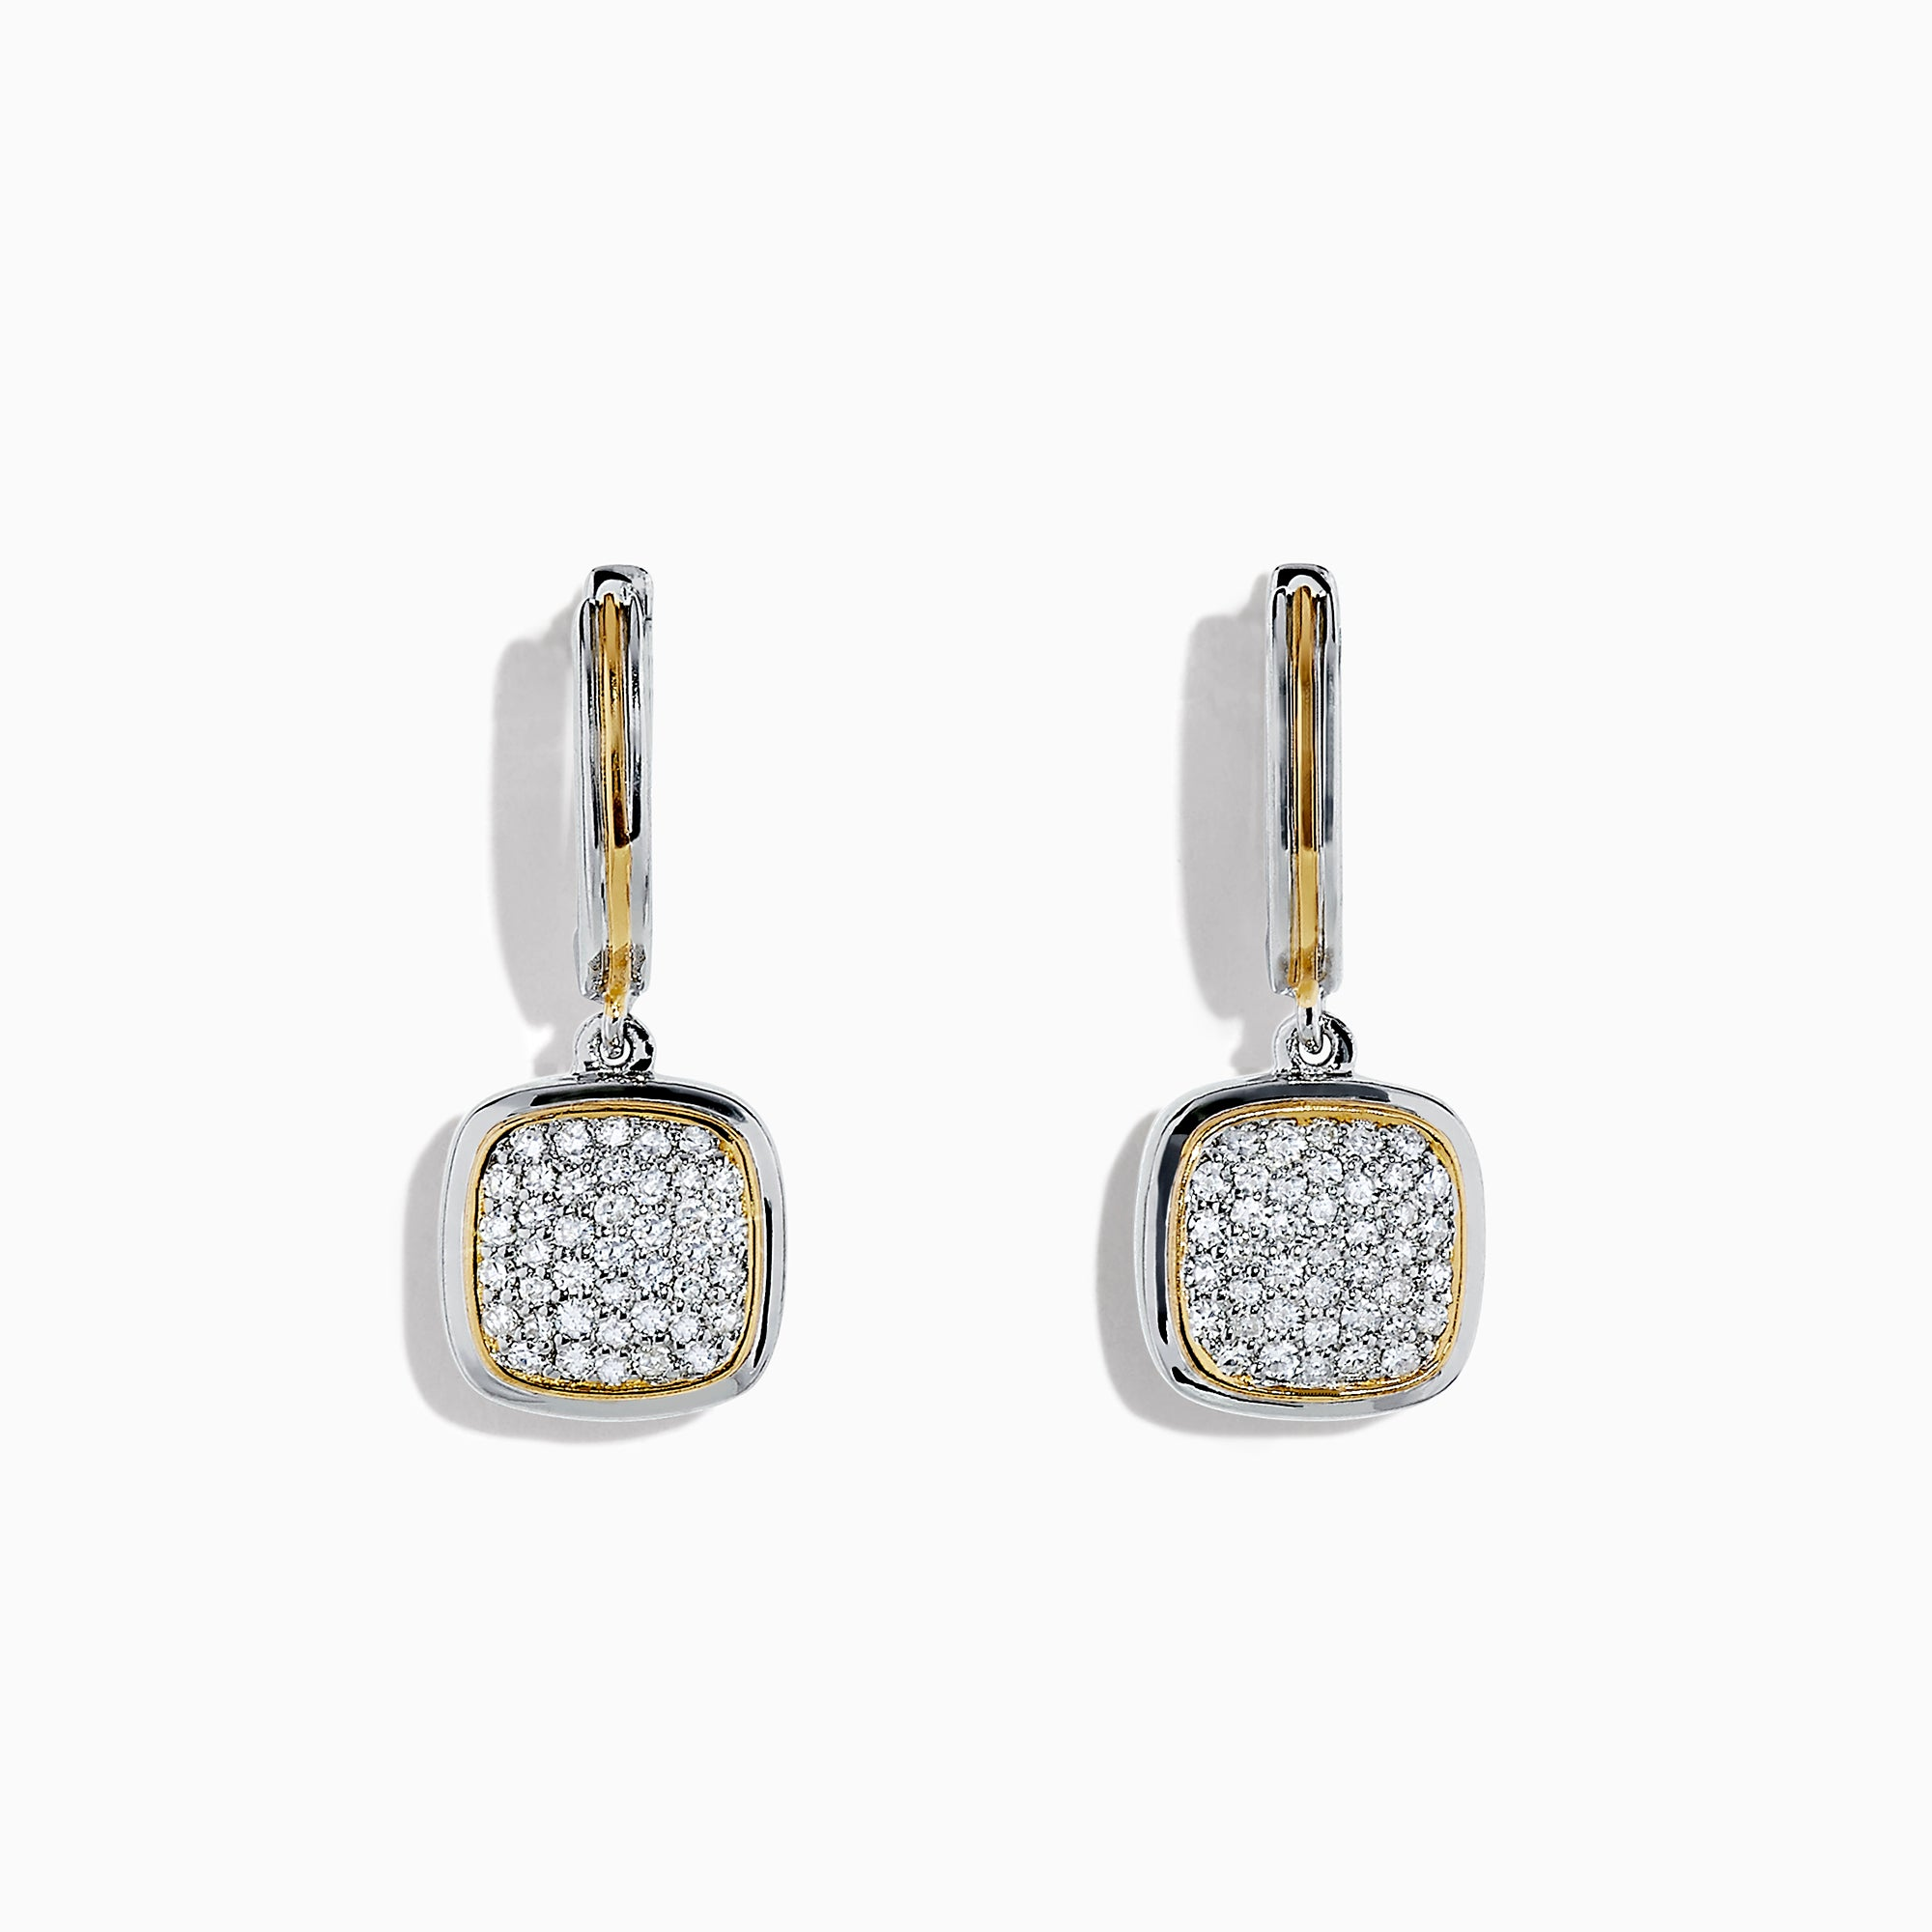 Effy 925 Sterling Silver & 18K Gold Accented Diamond Earrings, 0.42 TCW